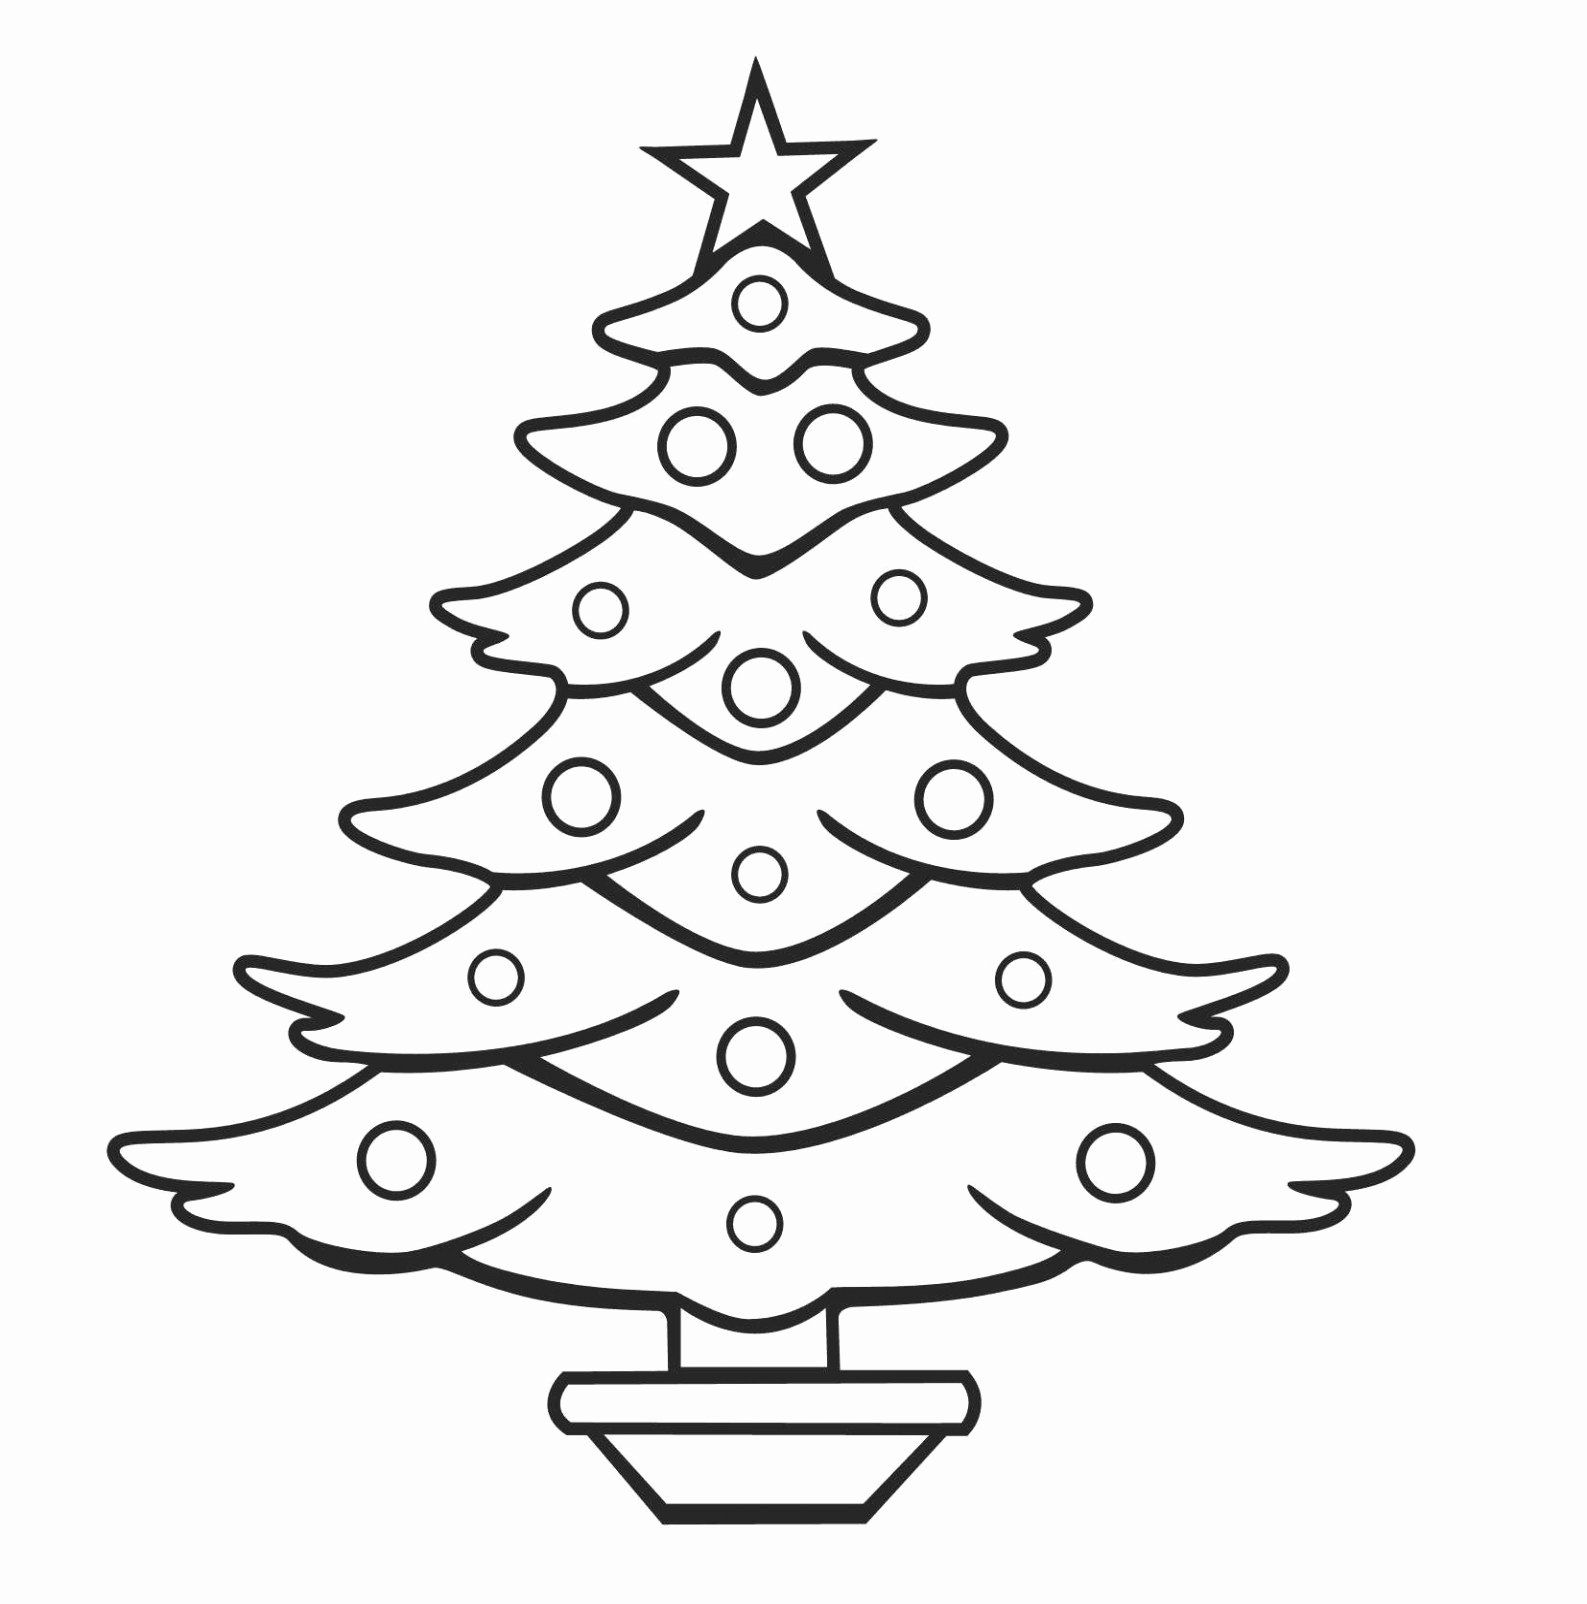 Coloring Fall Tree New Christmas Tree Coloring Page Halloween Christmas Trees Weihnachtsbaum Vorlage Bunter Weihnachtsbaum Malvorlagen Weihnachten